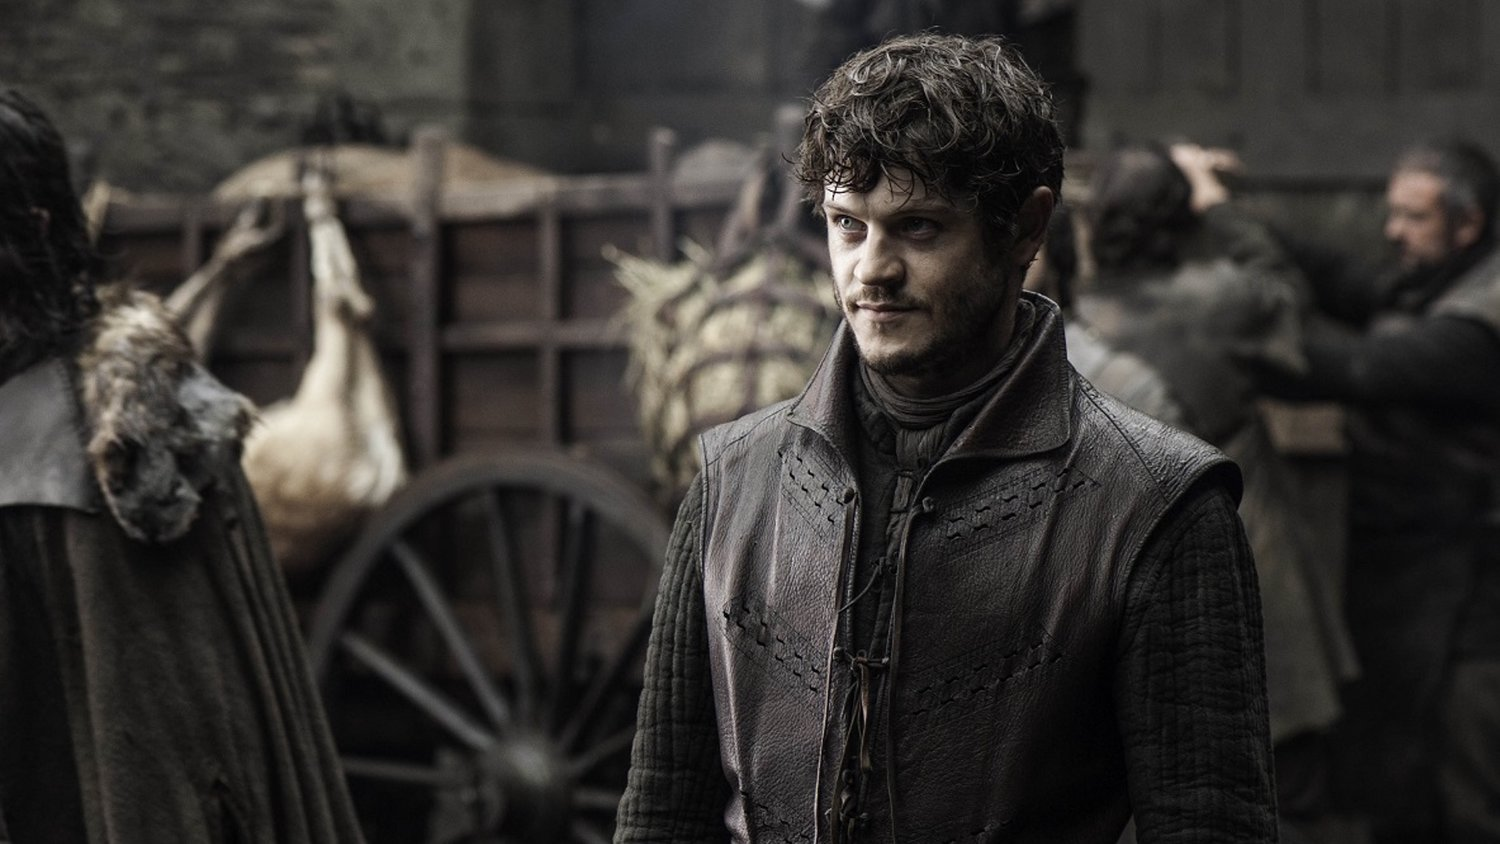 GAME OF THRONES Actor Iwan Rheon Will Star in Marvel's THE INHUMANS